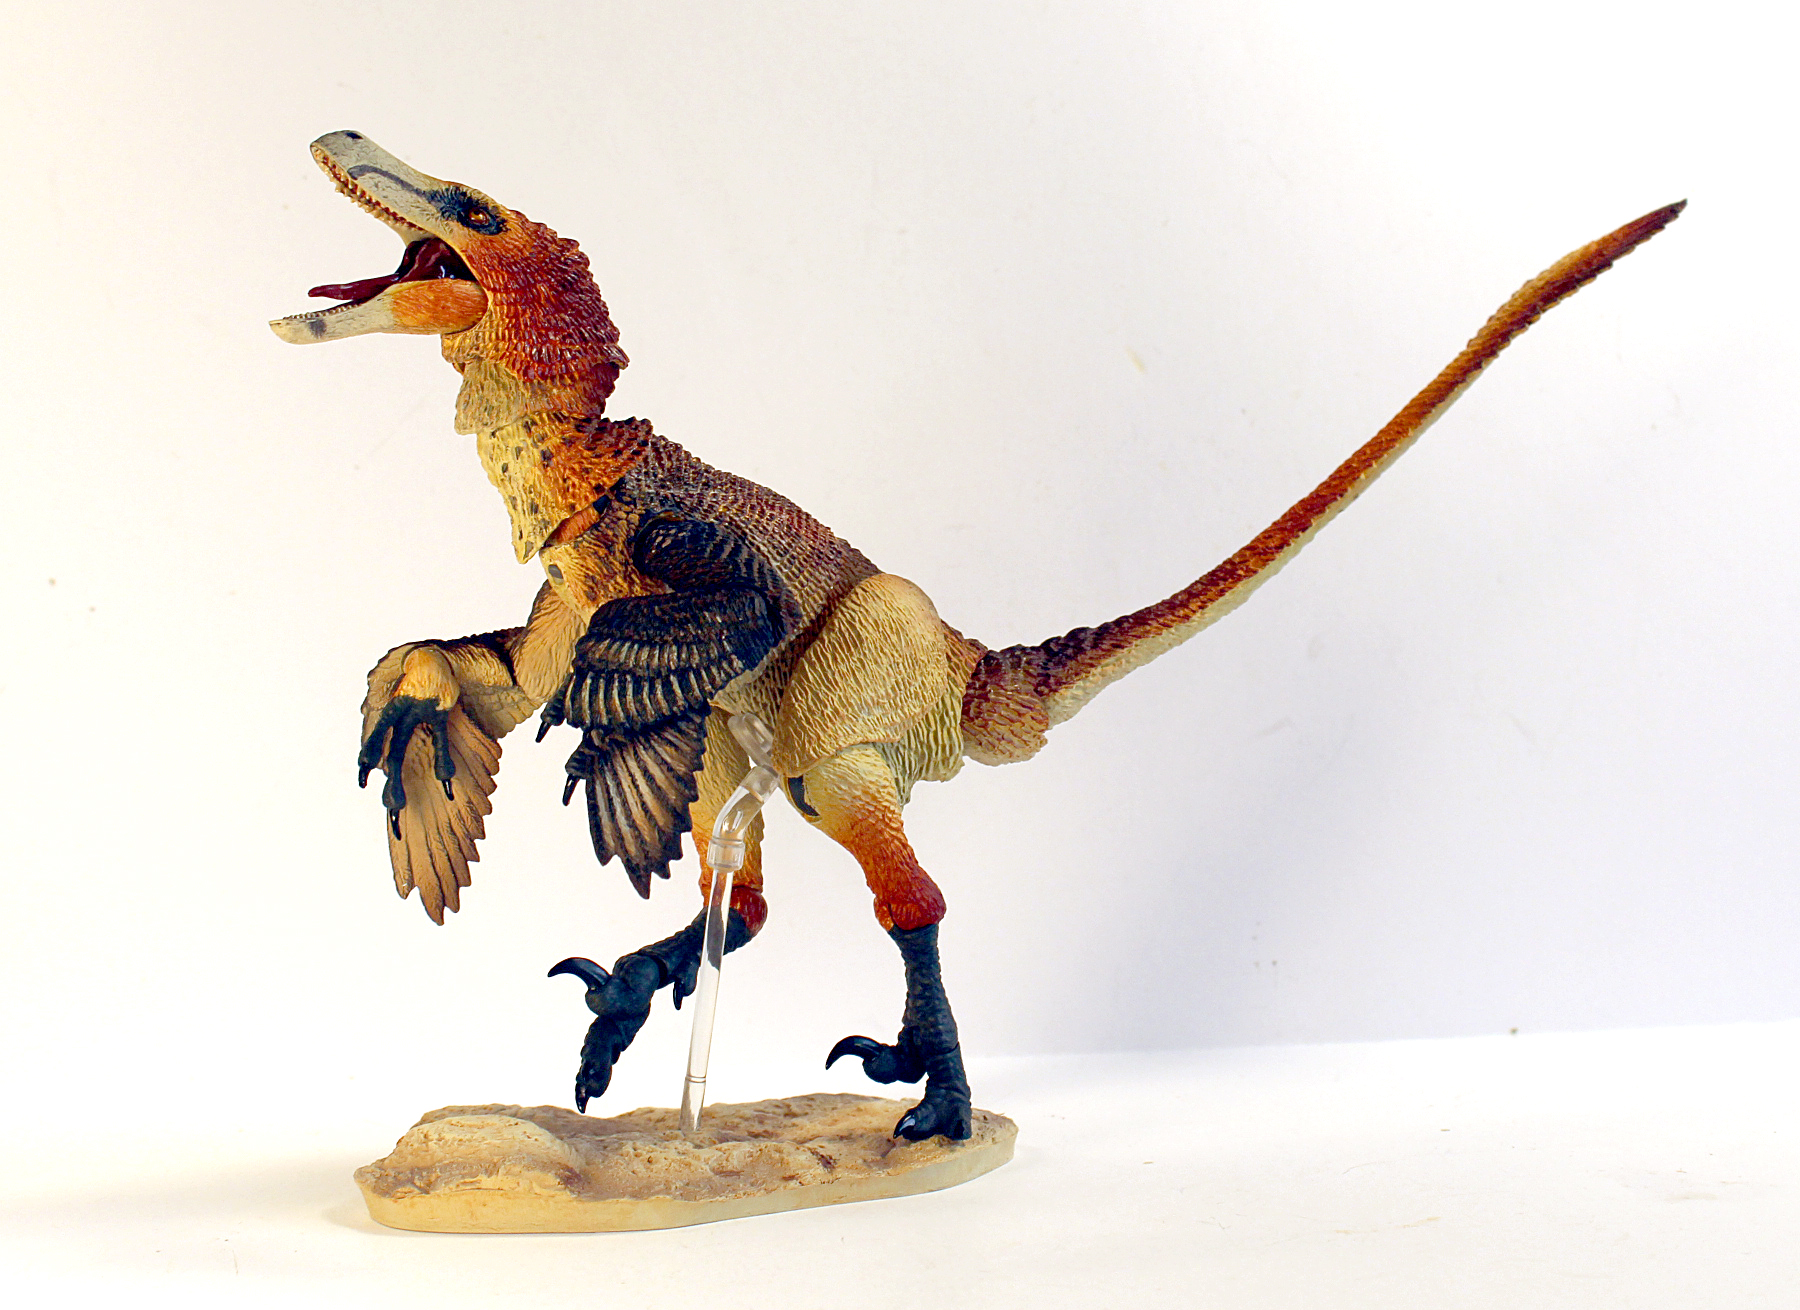 Photo of an articulated figure of Velociraptor mongoliensis, designed by David Silva.